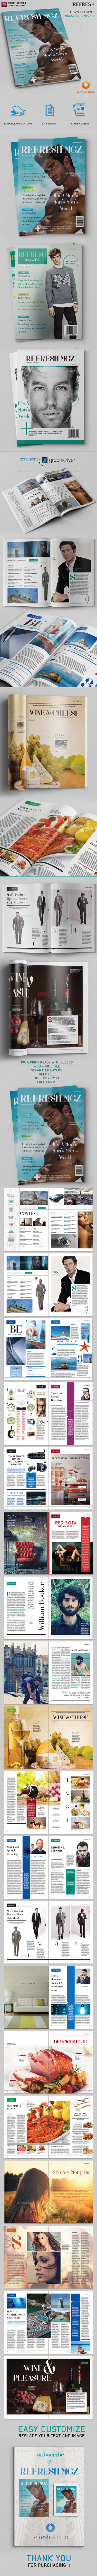 GraphicRiver Refresh Men s Lifestyle Magazine 10924846